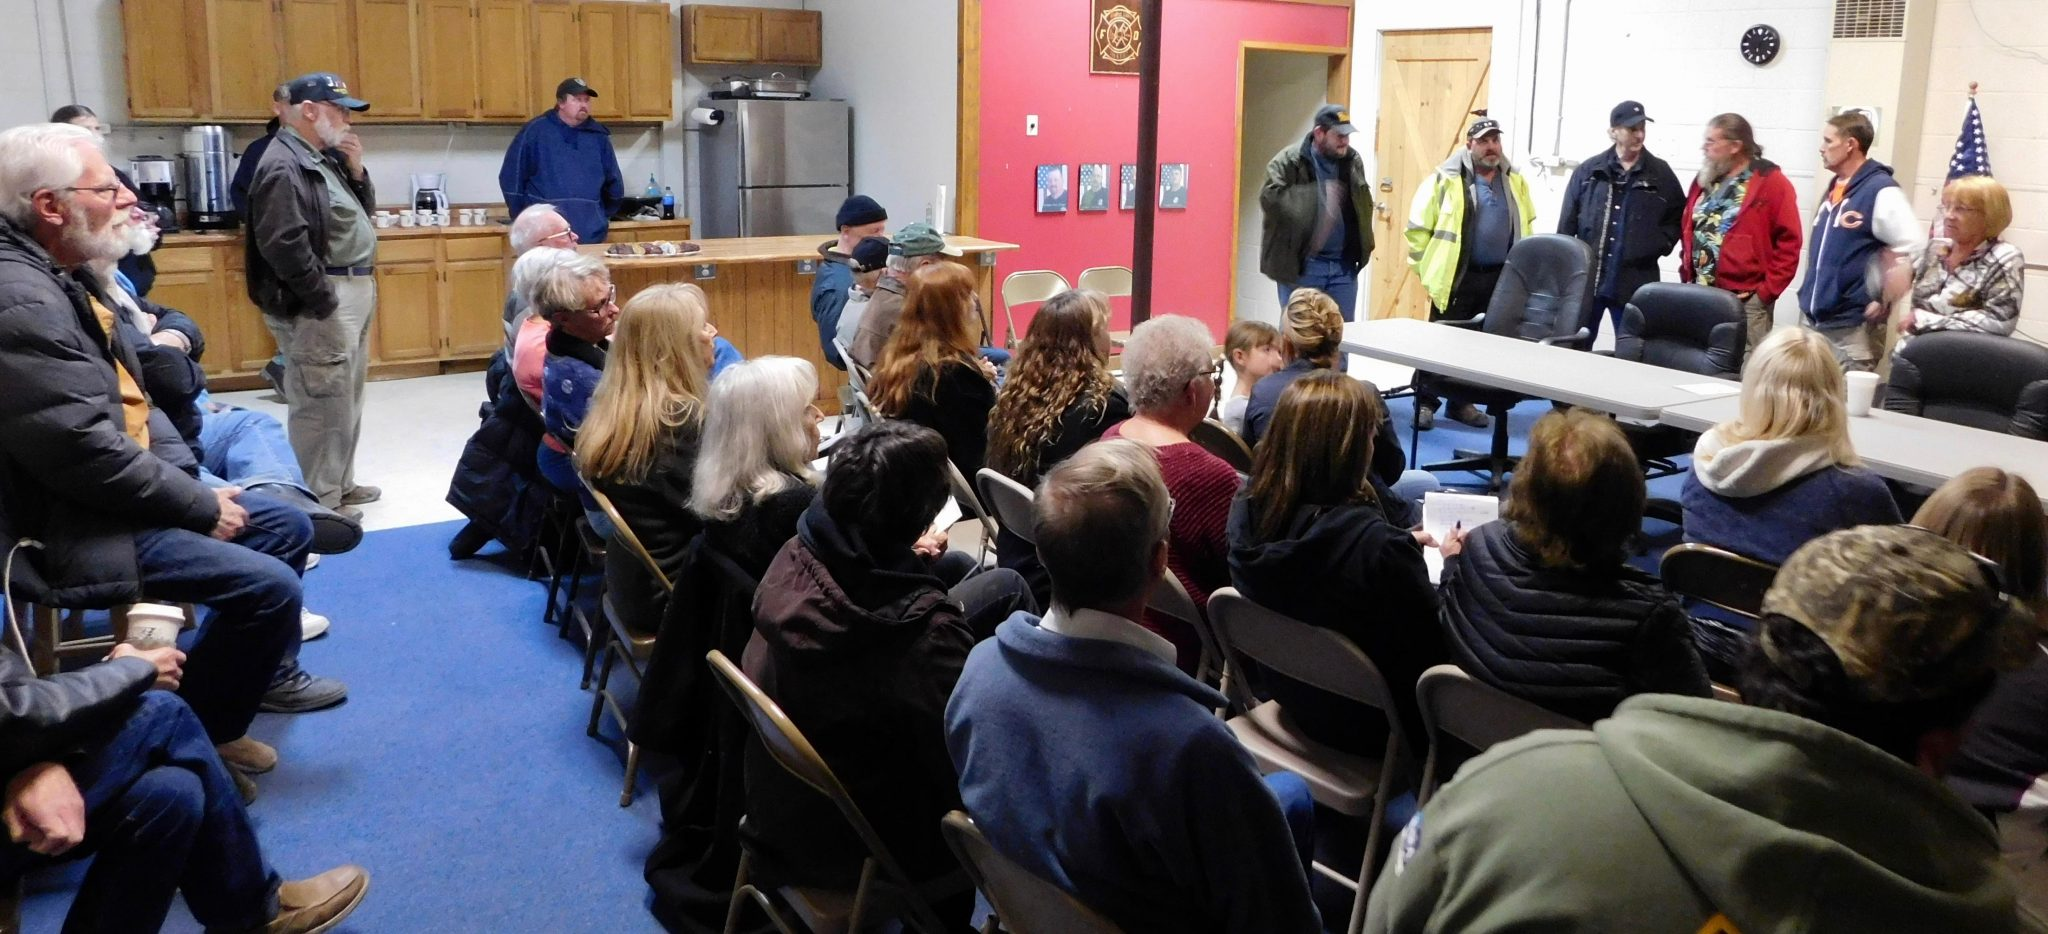 Walker Lake Residents Meet in Effort to Re-Form Advisory Board